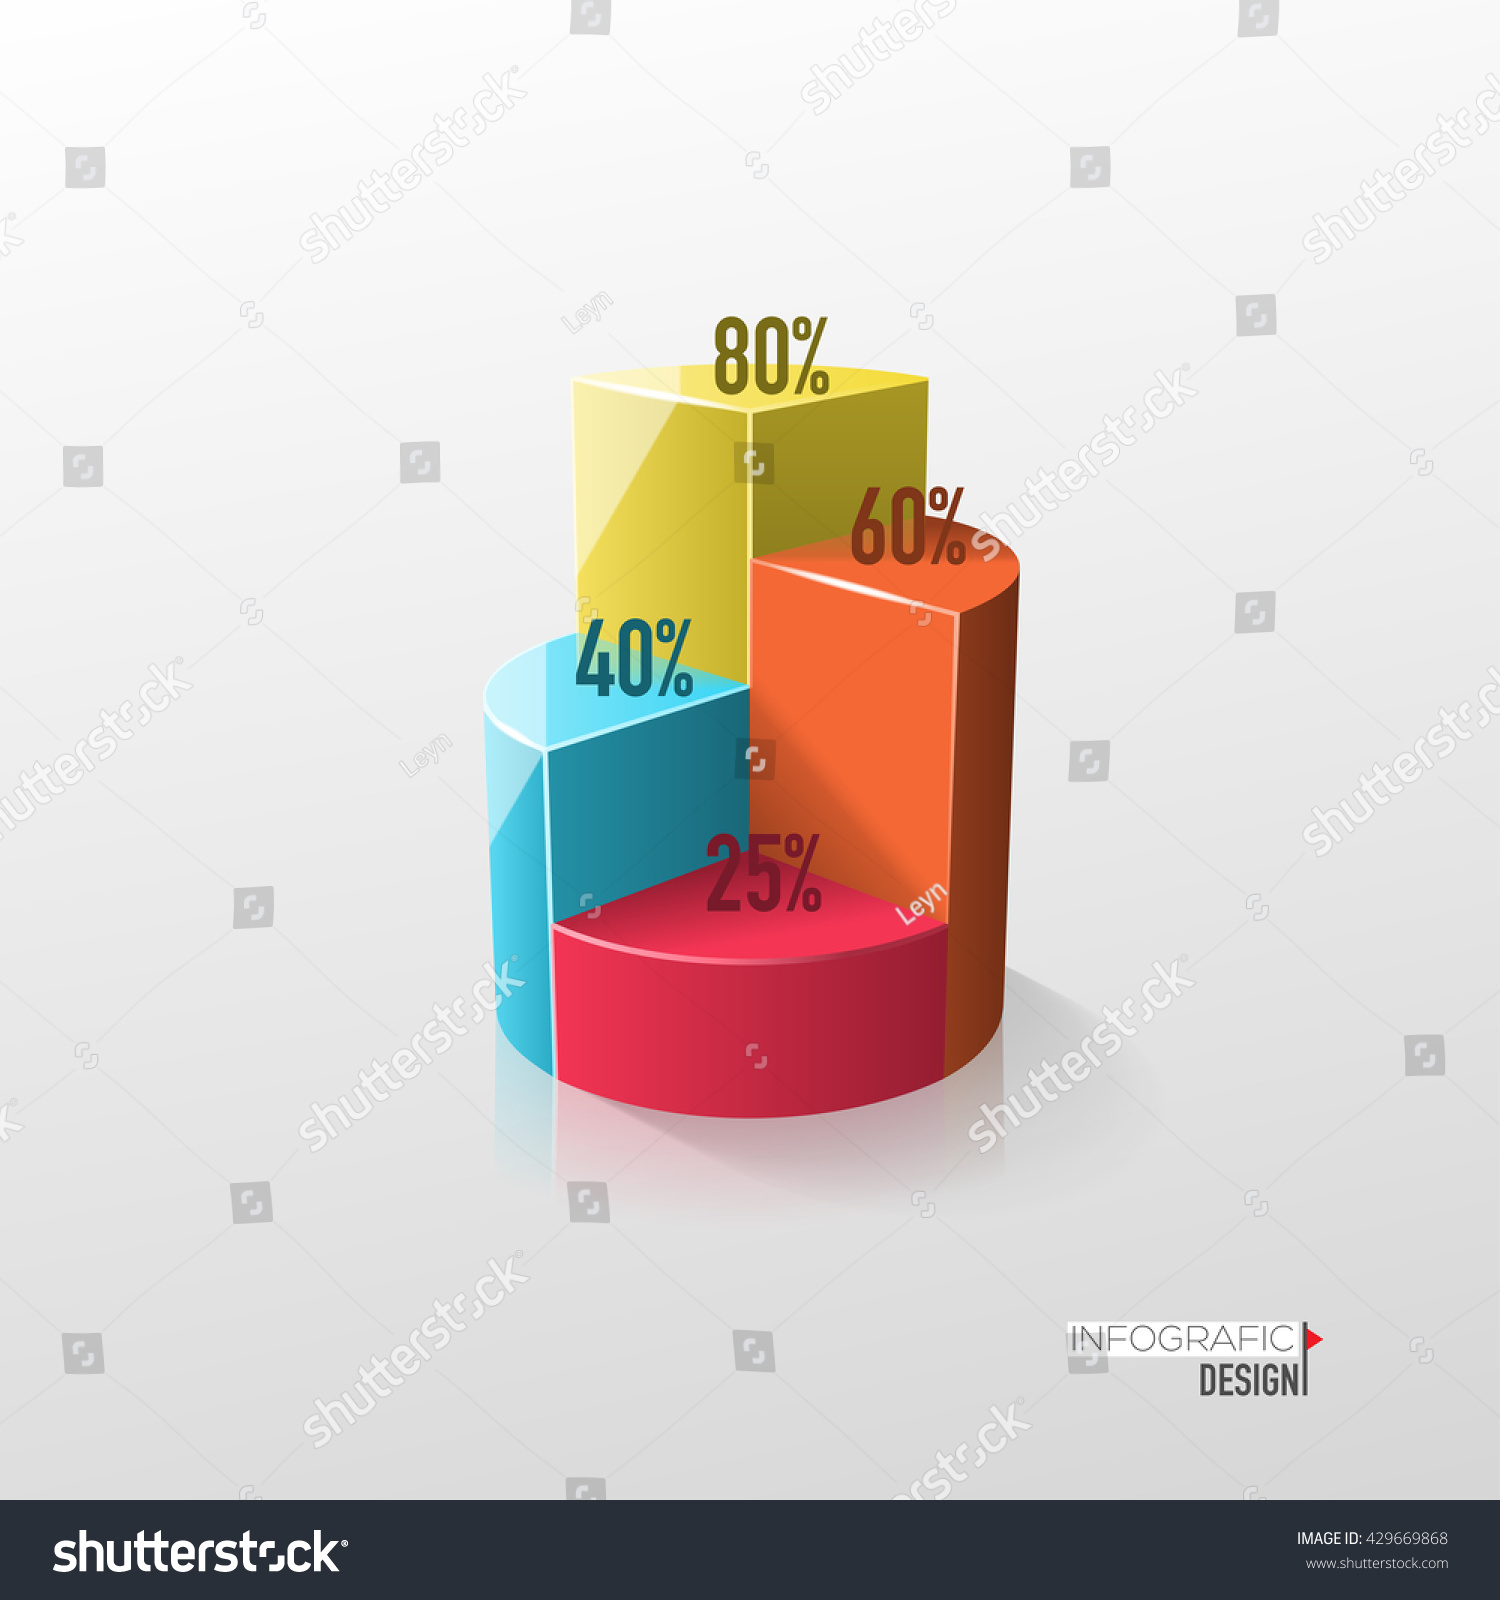 Creative vector colorful 3d pie chart stock vector 429669868 creative vector colorful 3d pie chart for your business reports and financial data presentation geenschuldenfo Image collections